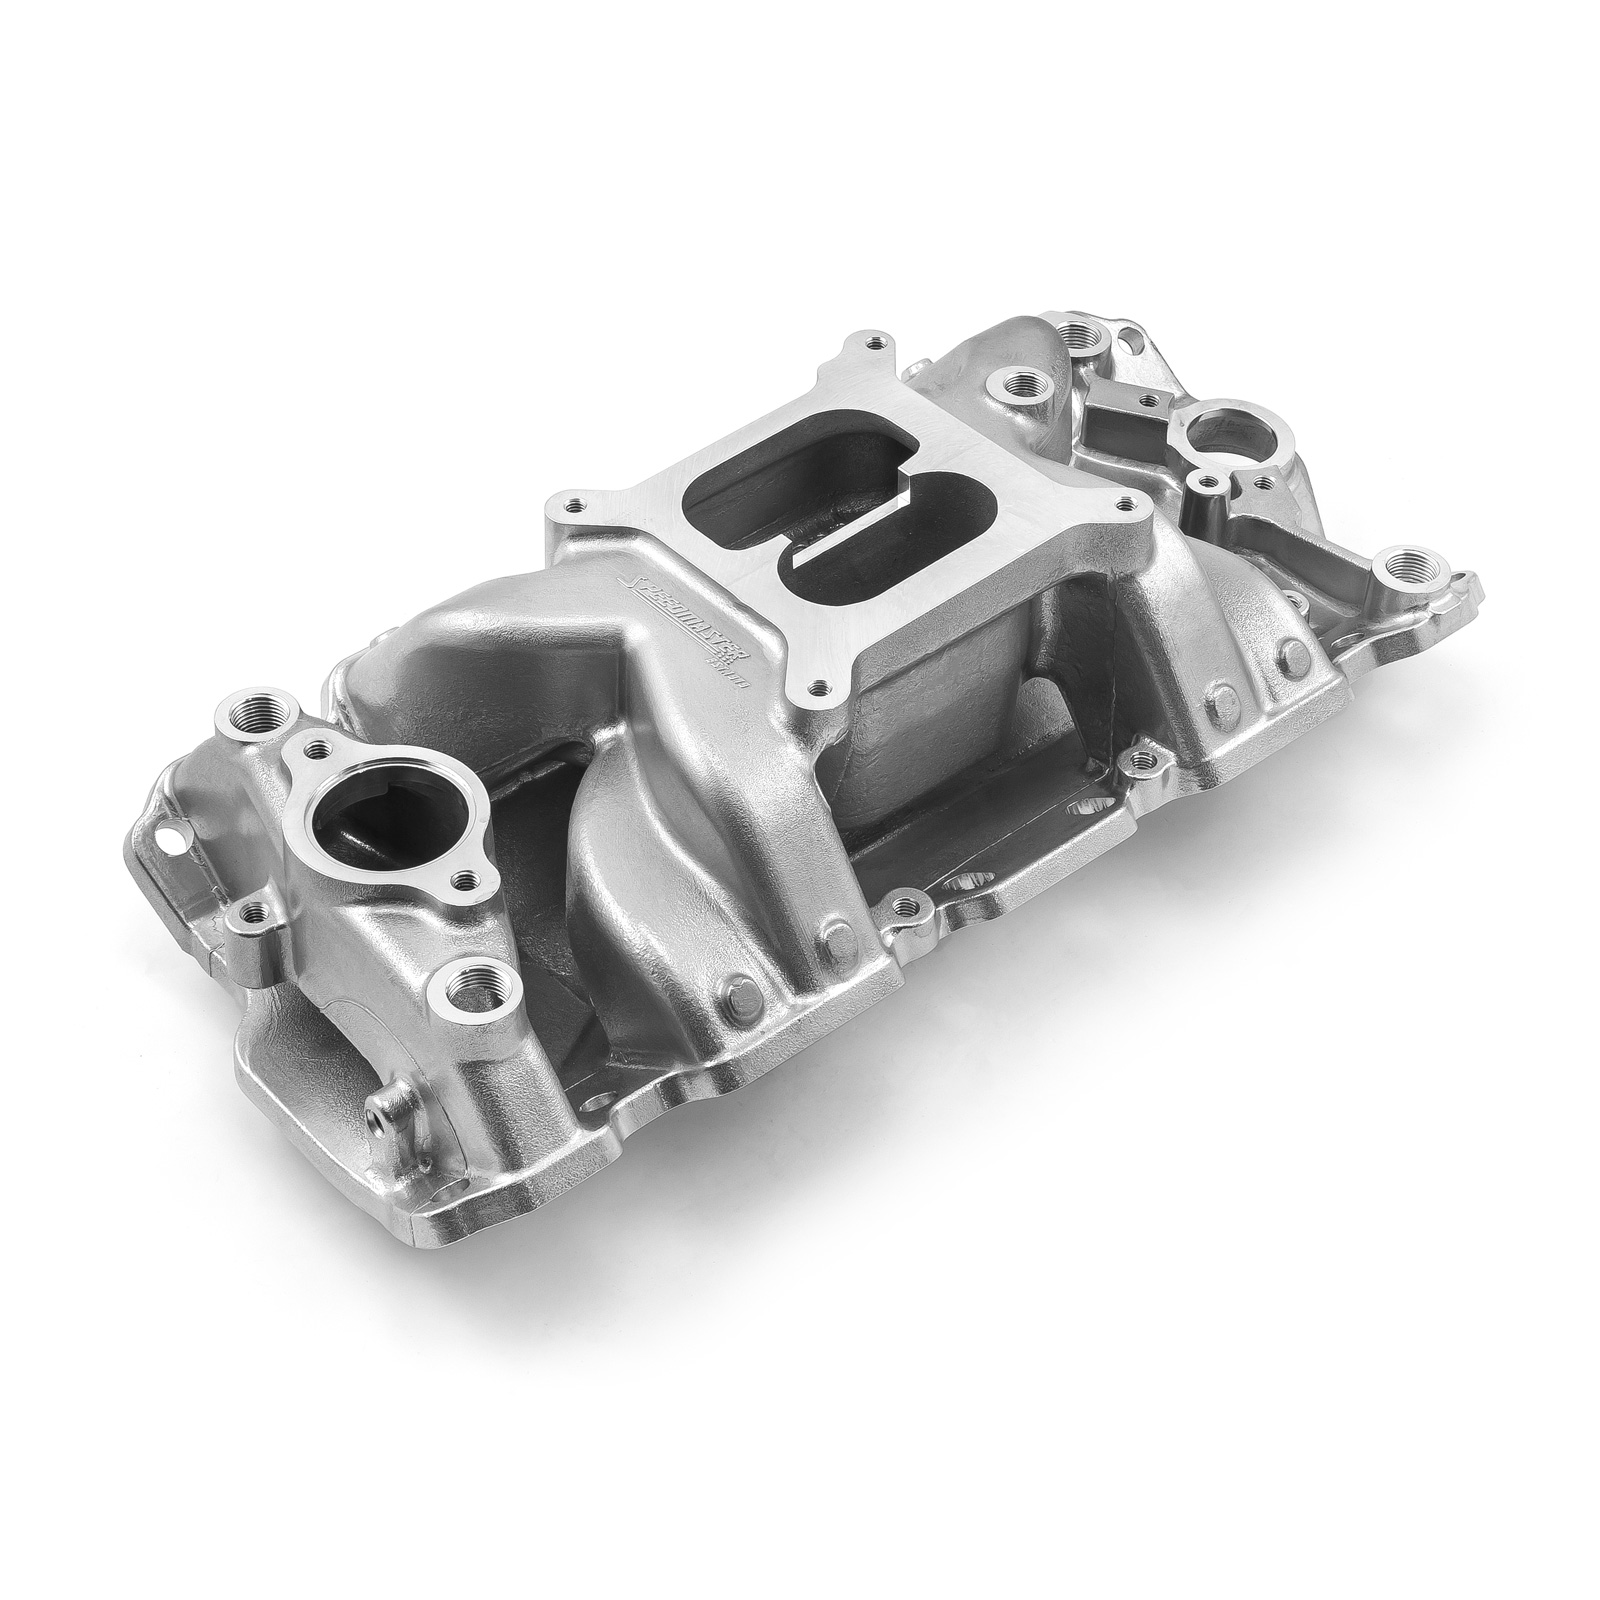 Chevy SBC 350 MidRise Air 1957-95 Intake Manifold Machine Polished